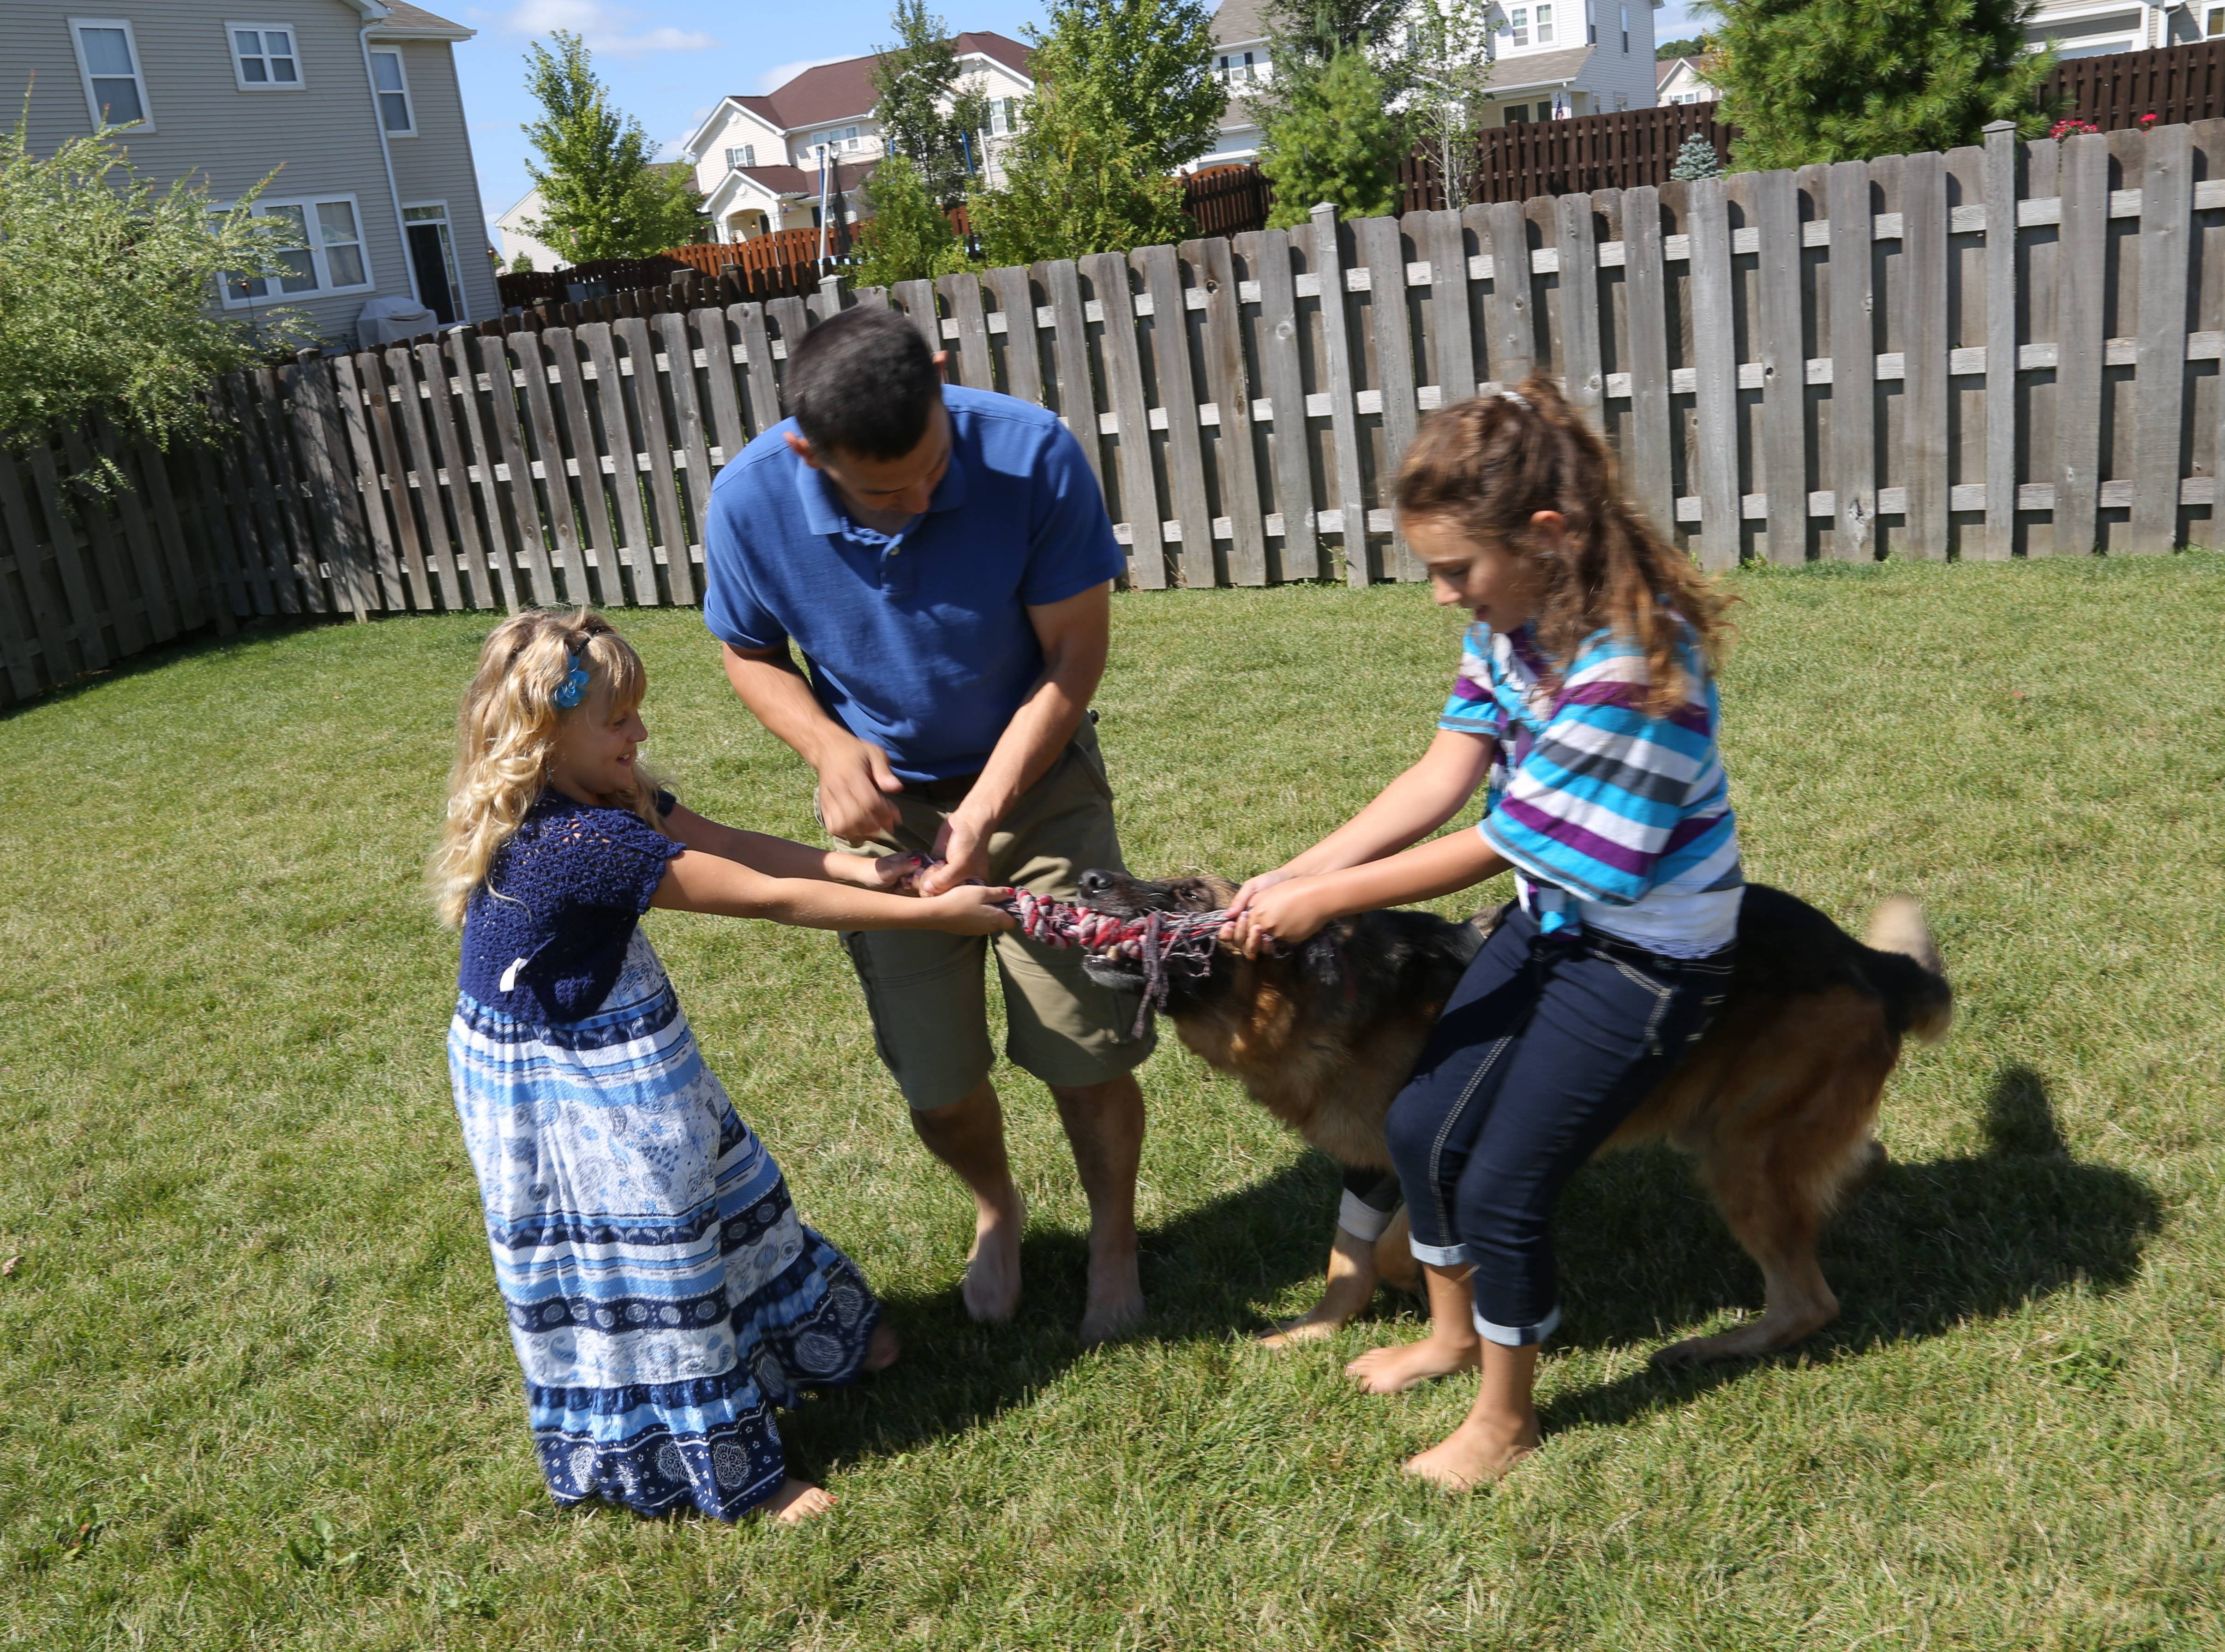 Gurnee Police Officer Phil Mazur and his daughters Kailey, 10, right, and Allison, 8, play in their backyard with retired police dog Shane, 9, at their home in Kenosha, Wisconsin.